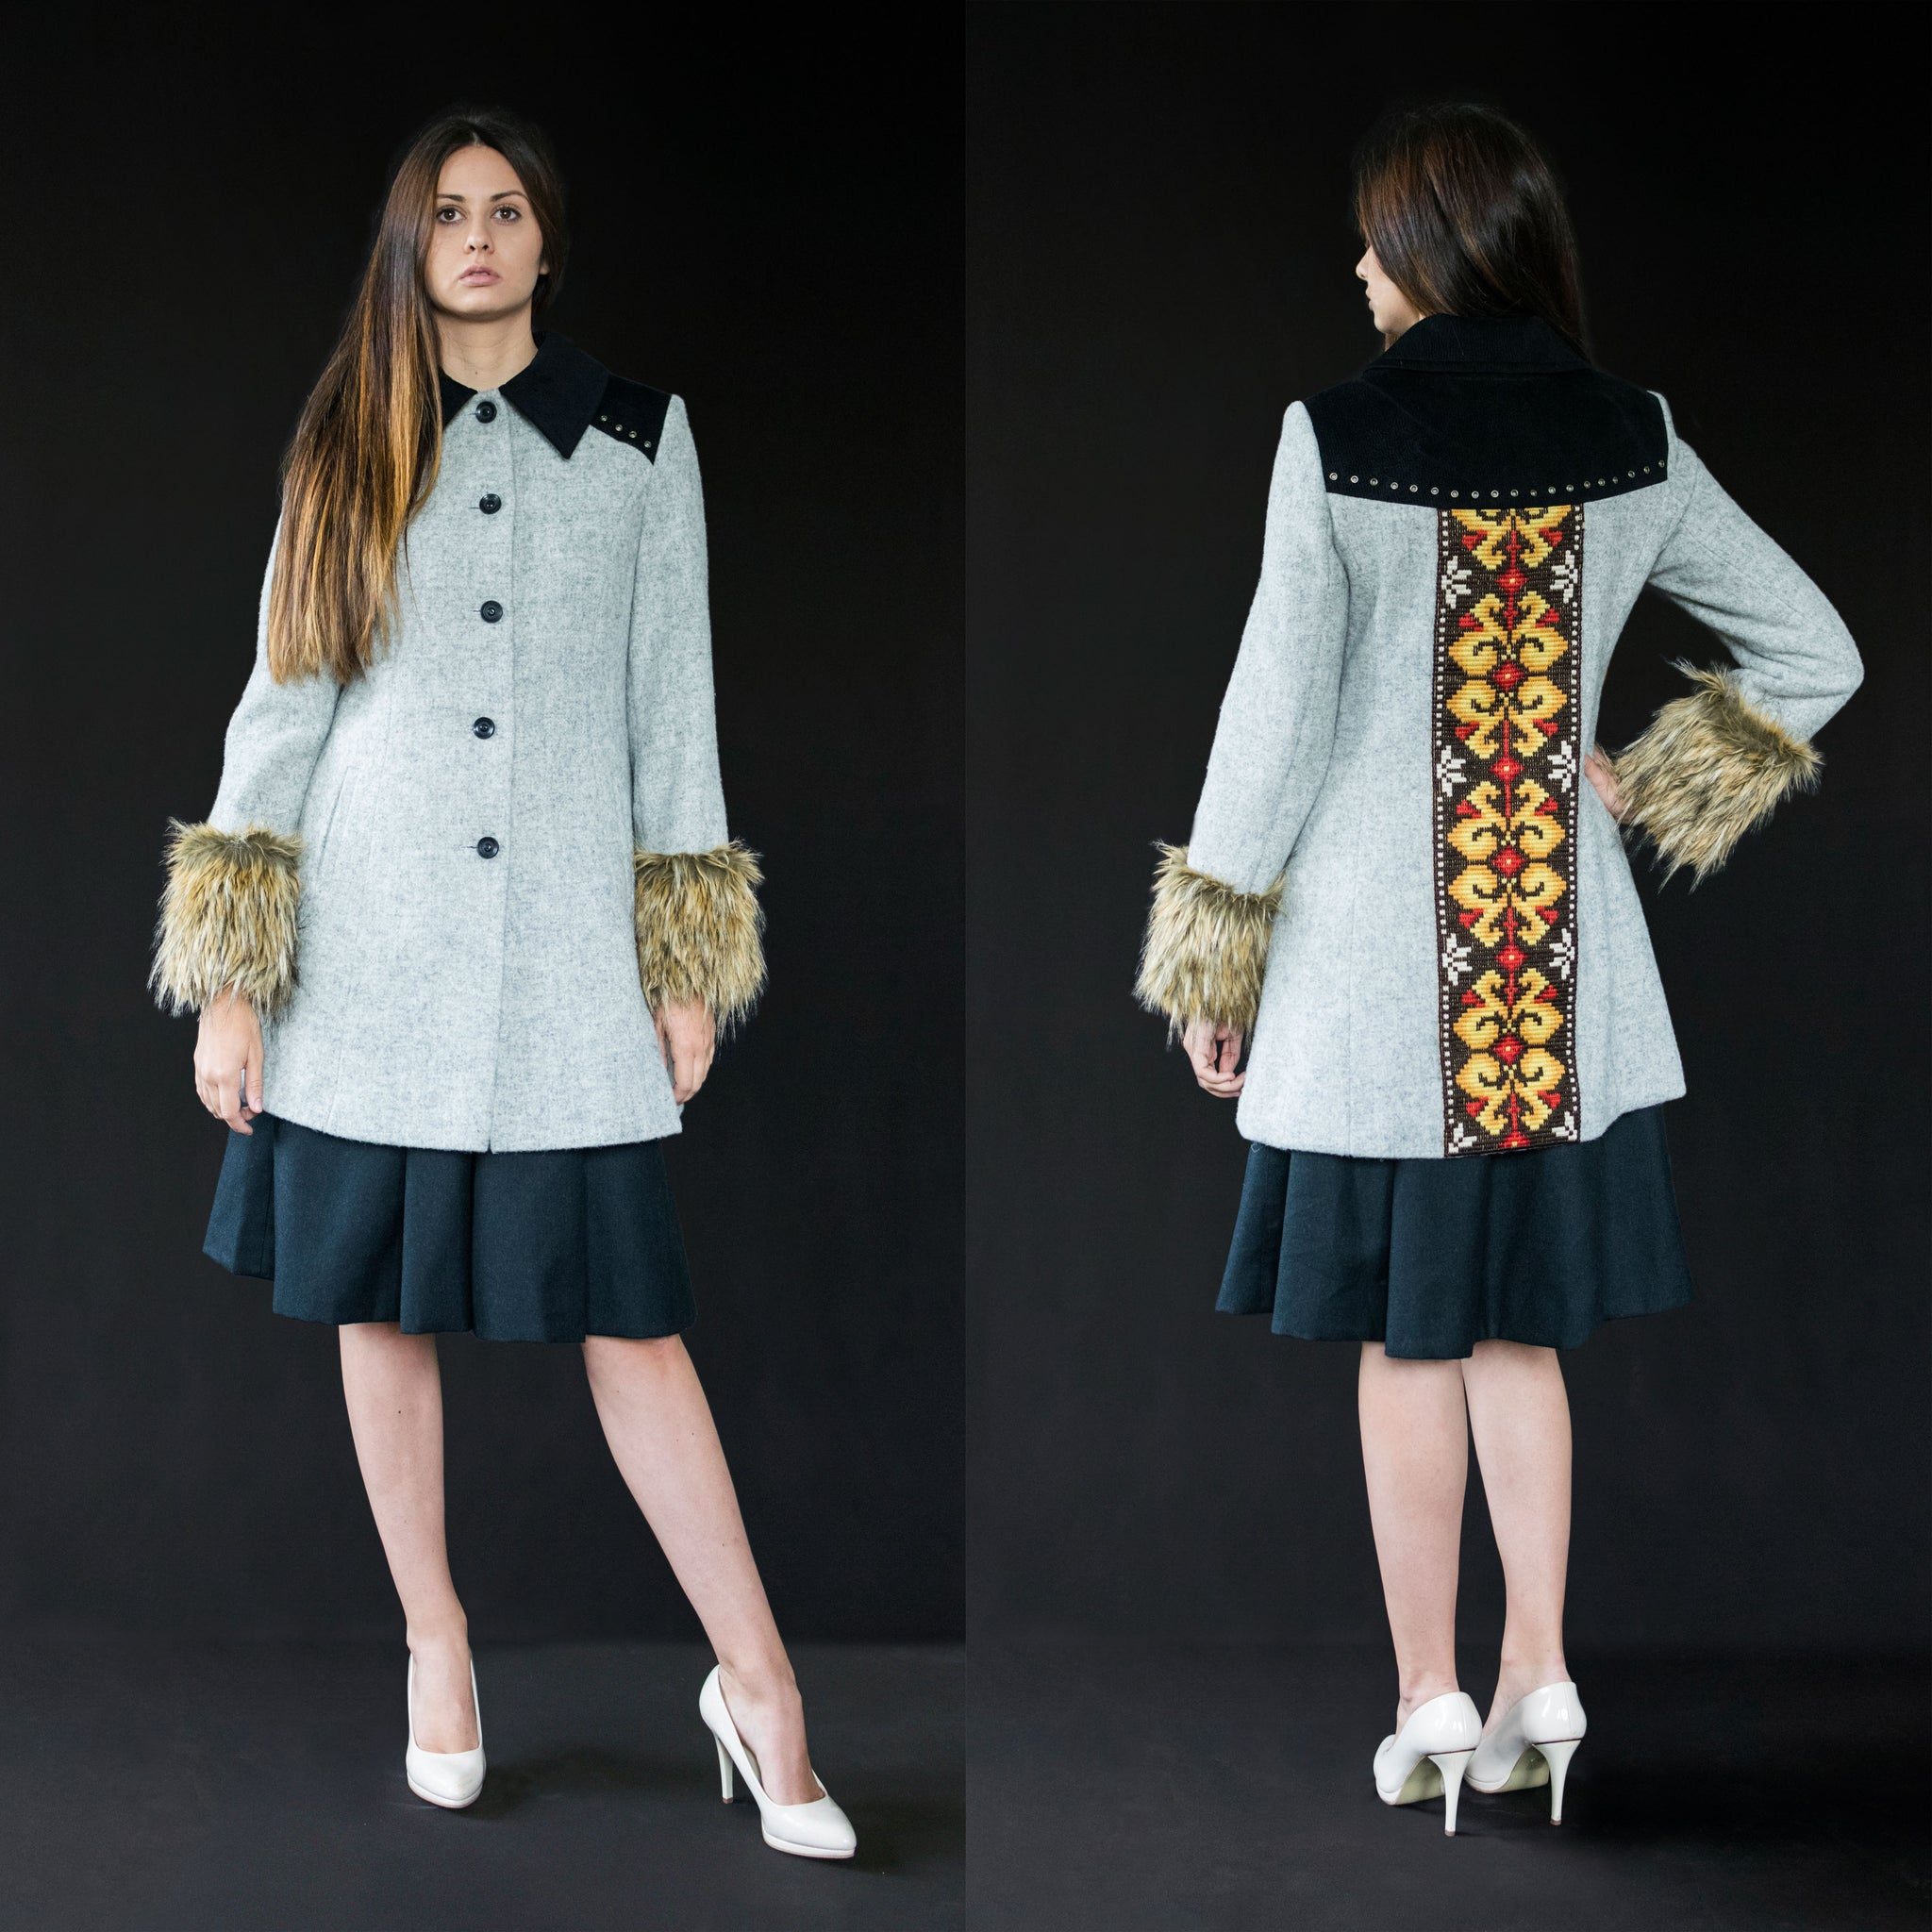 Coat light grey (wool + vintage embroidery)